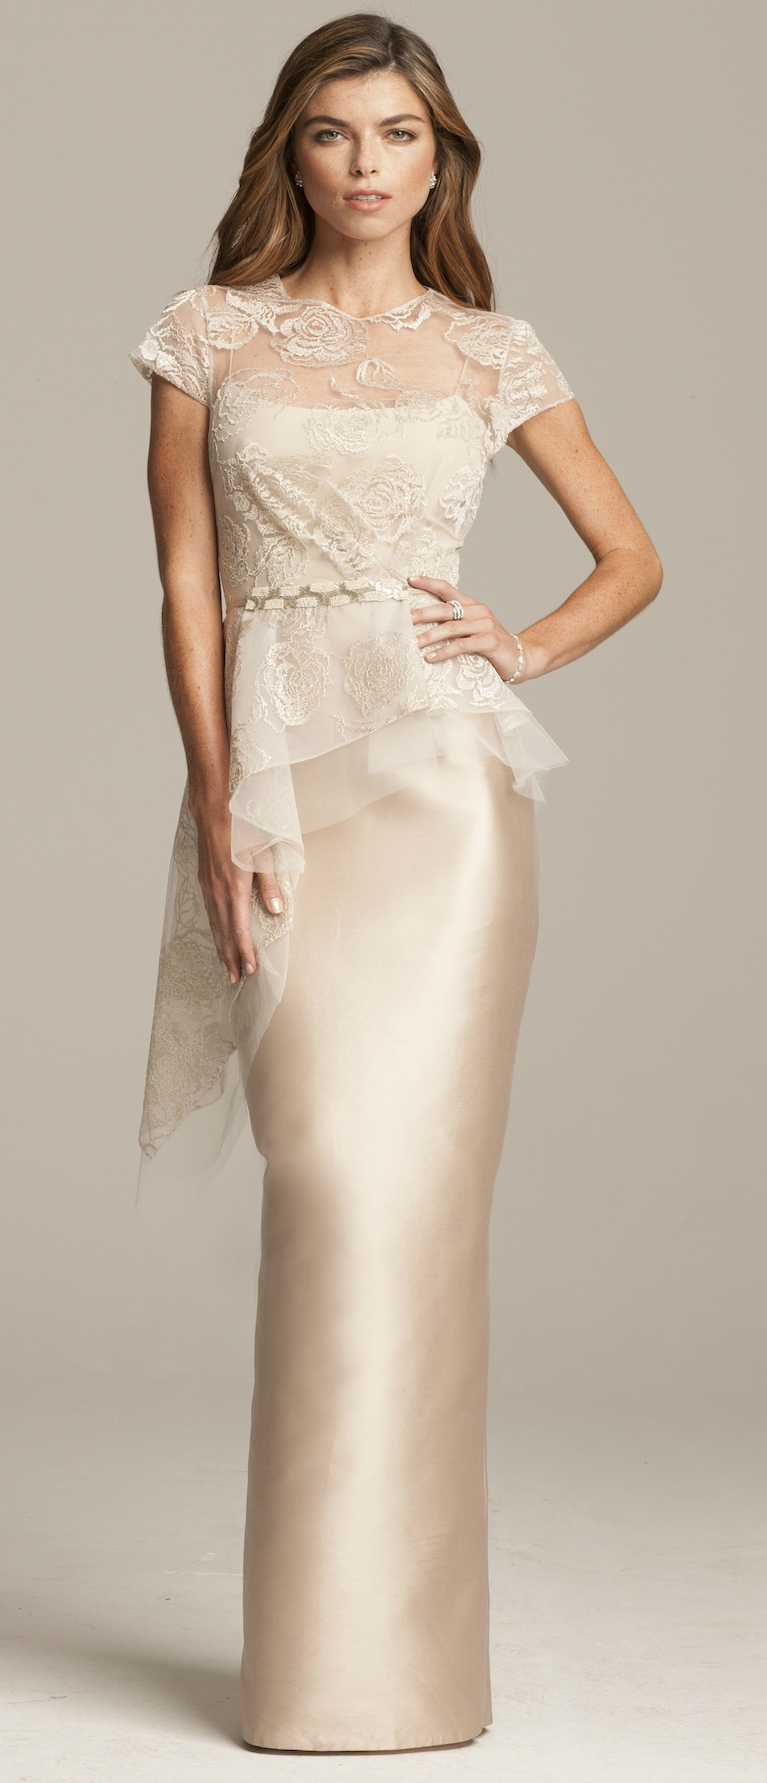 3b41e0996d9 Champagne mother-of-the-bride gown